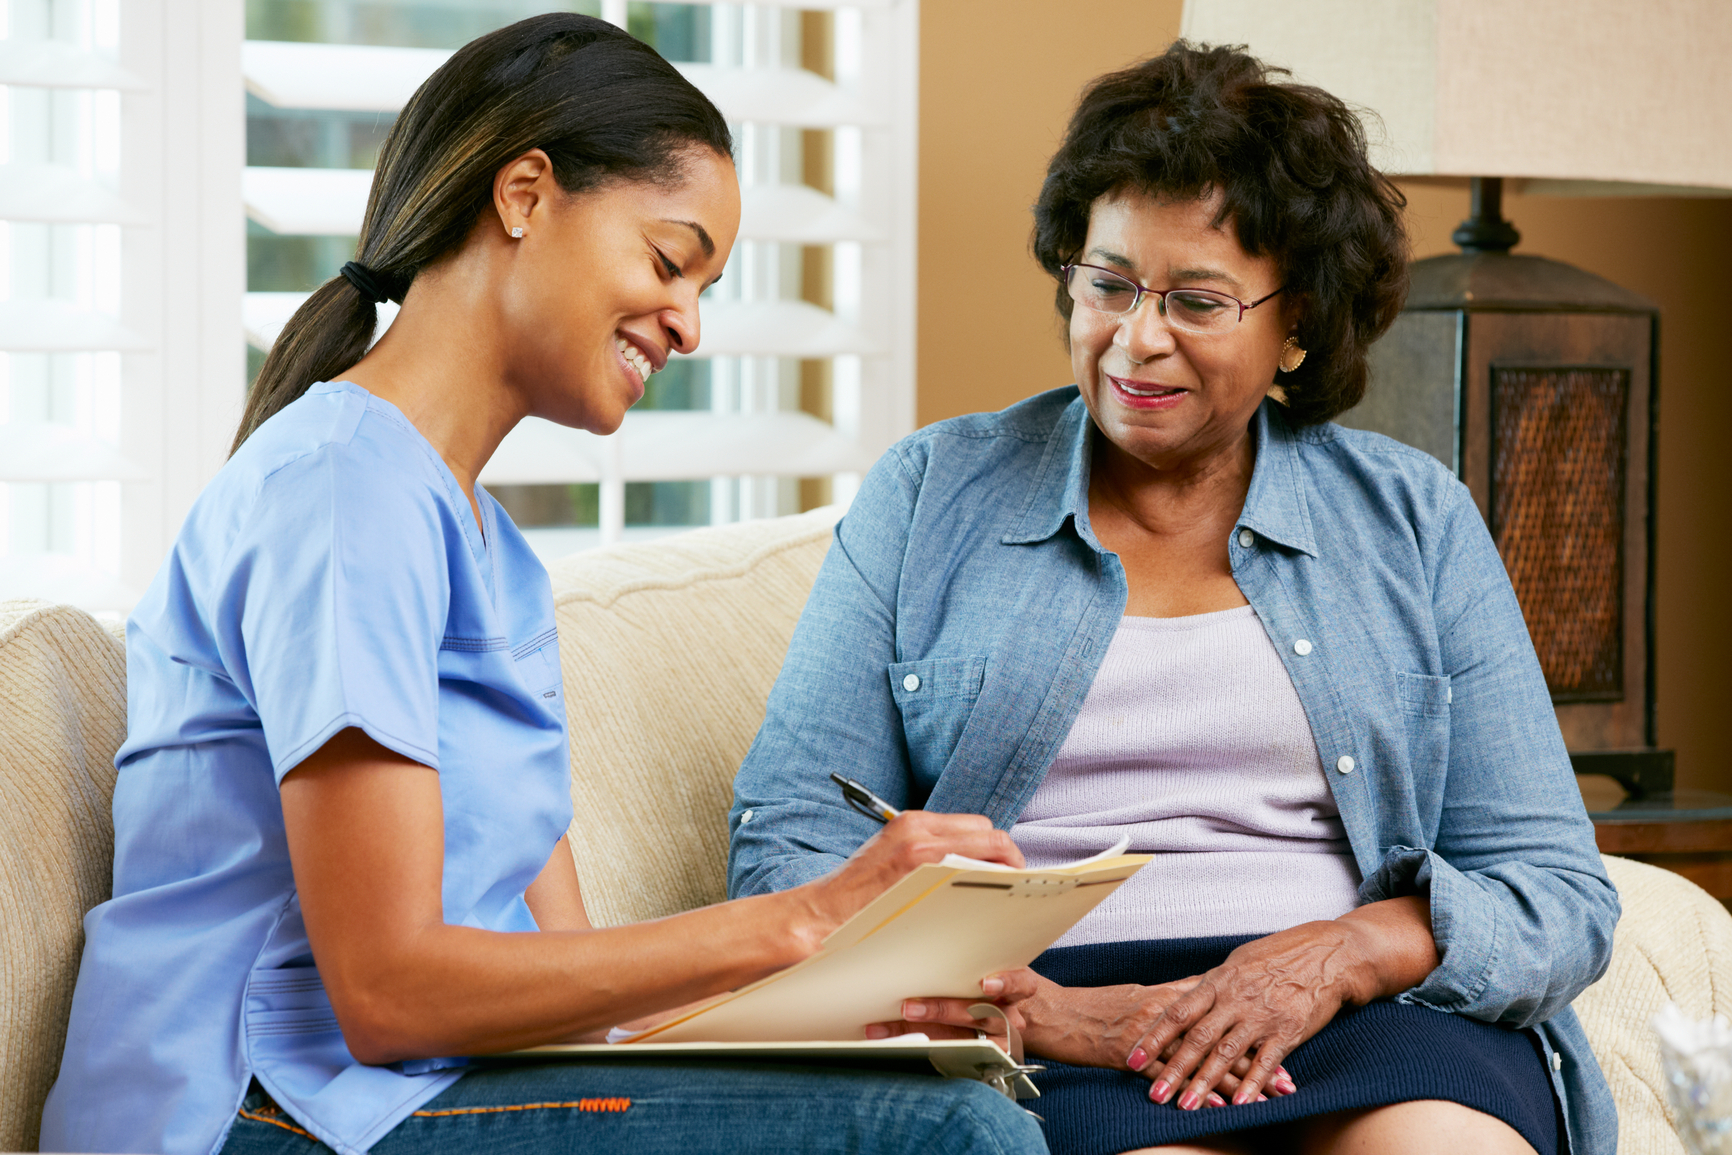 nursing and home healthcare services - felbry, Human Body